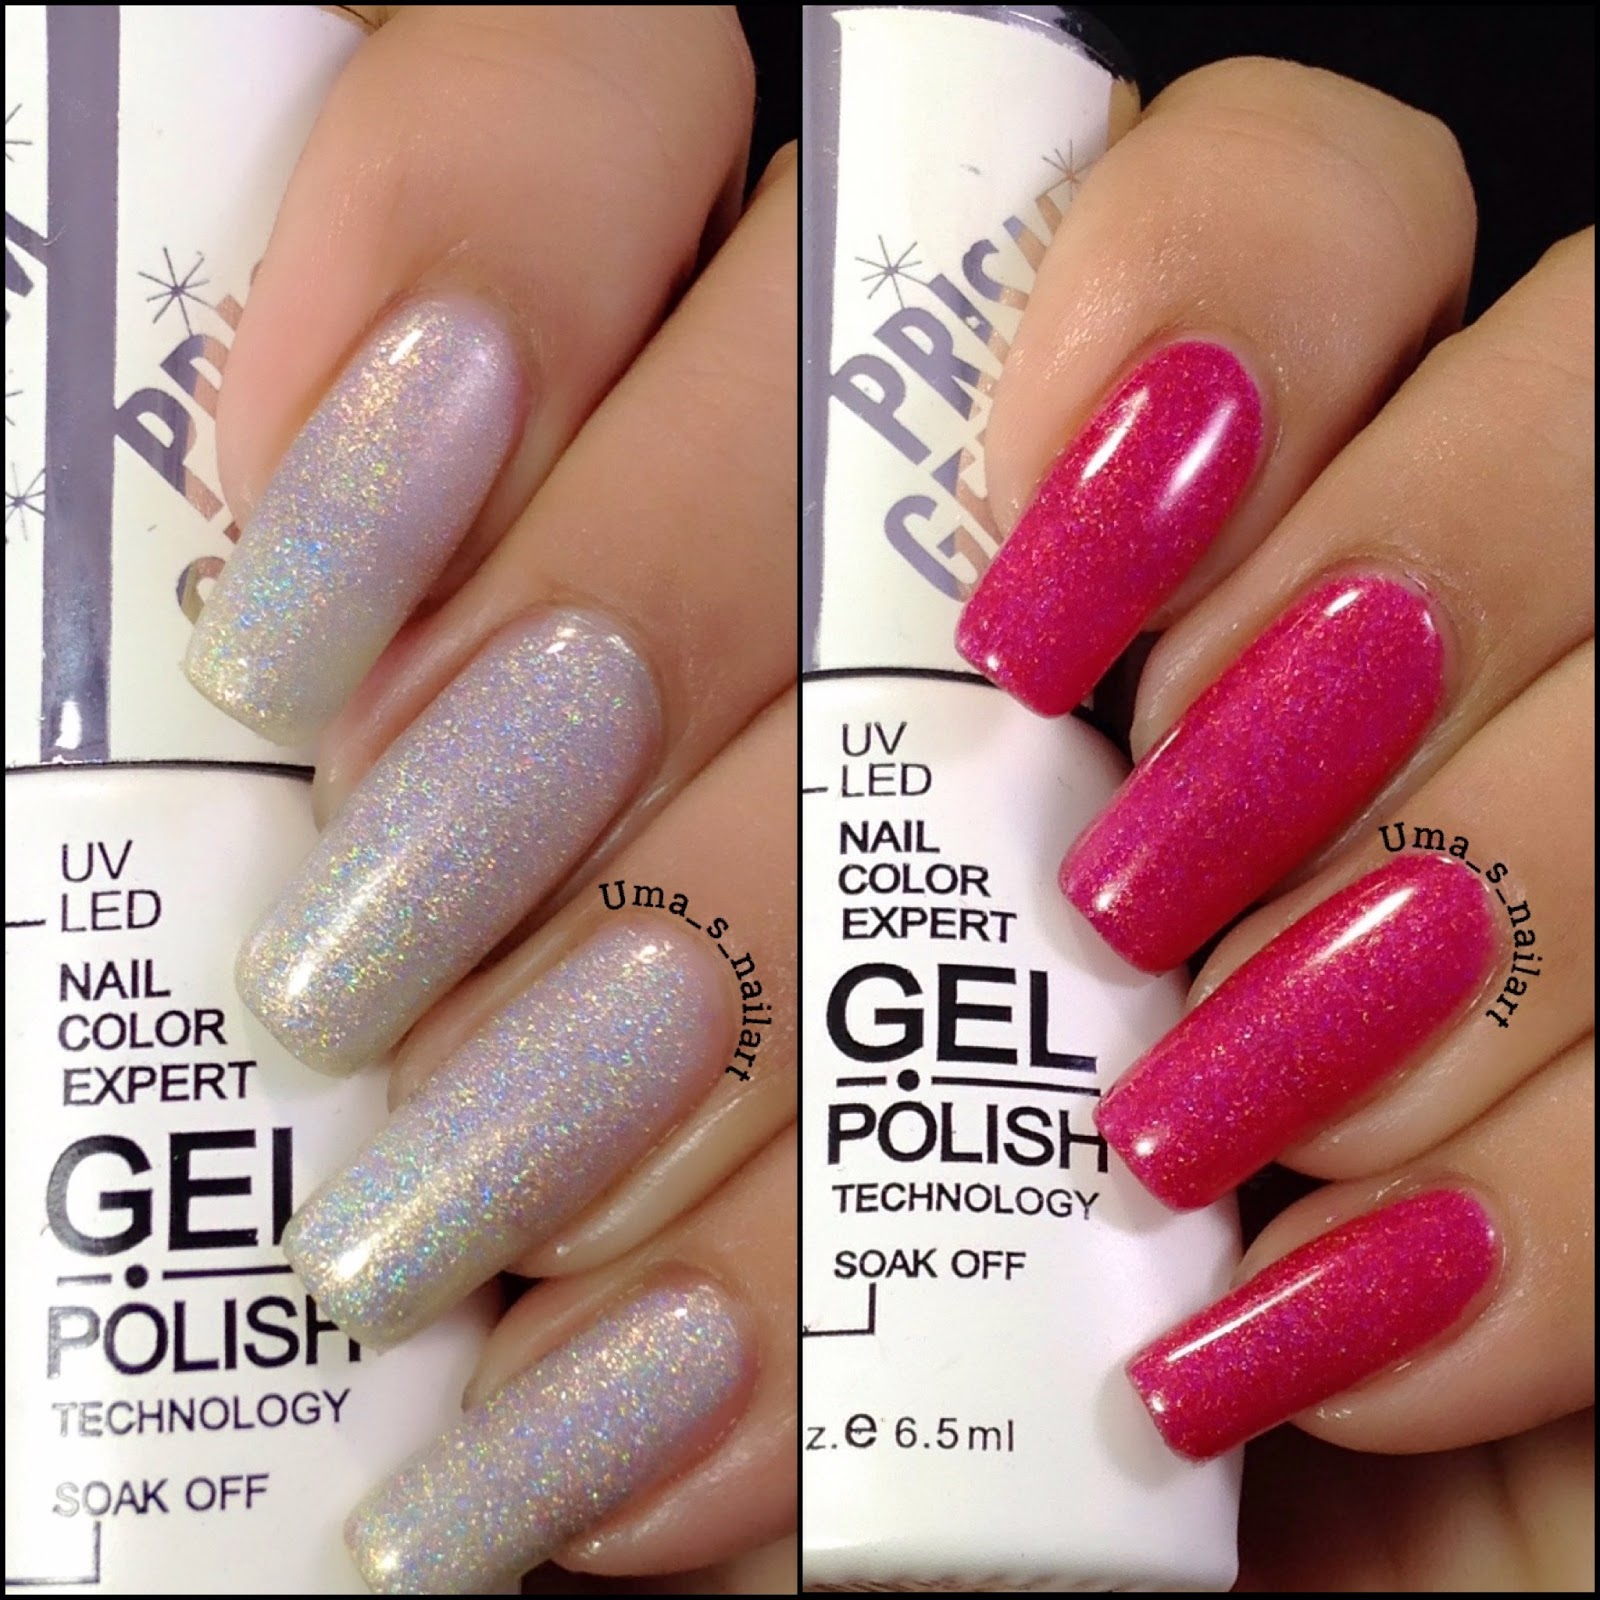 Uma\'s Nail Art: Dance Legend Gel Polishes Review and Swatches...